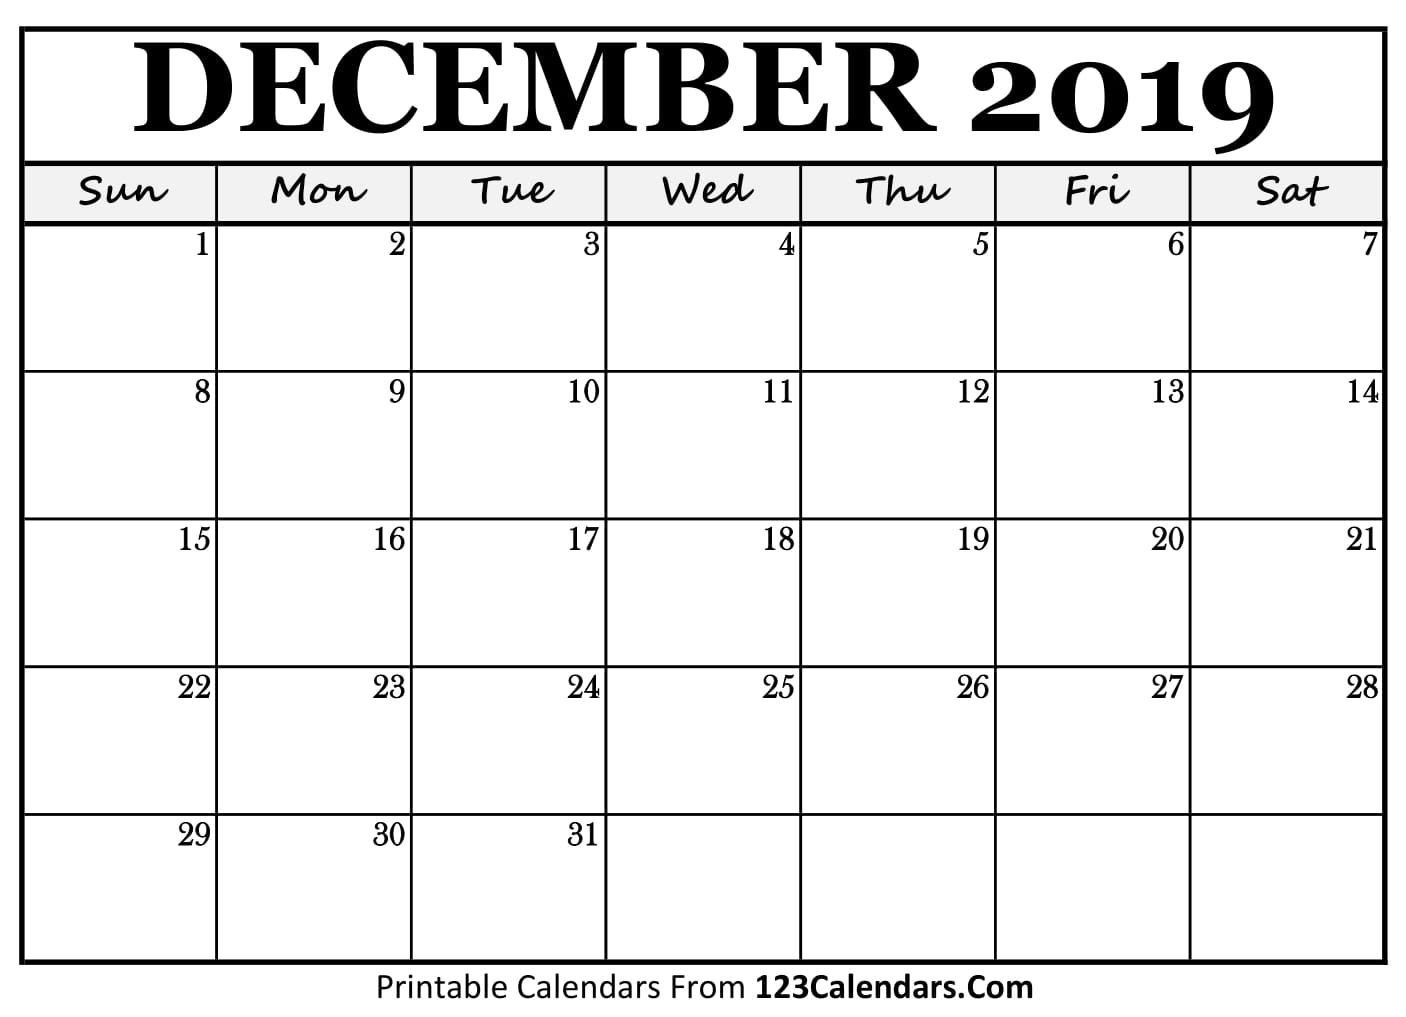 Blank December 2019 Calendar - Easily Printable - 123Calendars within Free Printable September Blank Calendars With Christian Themes